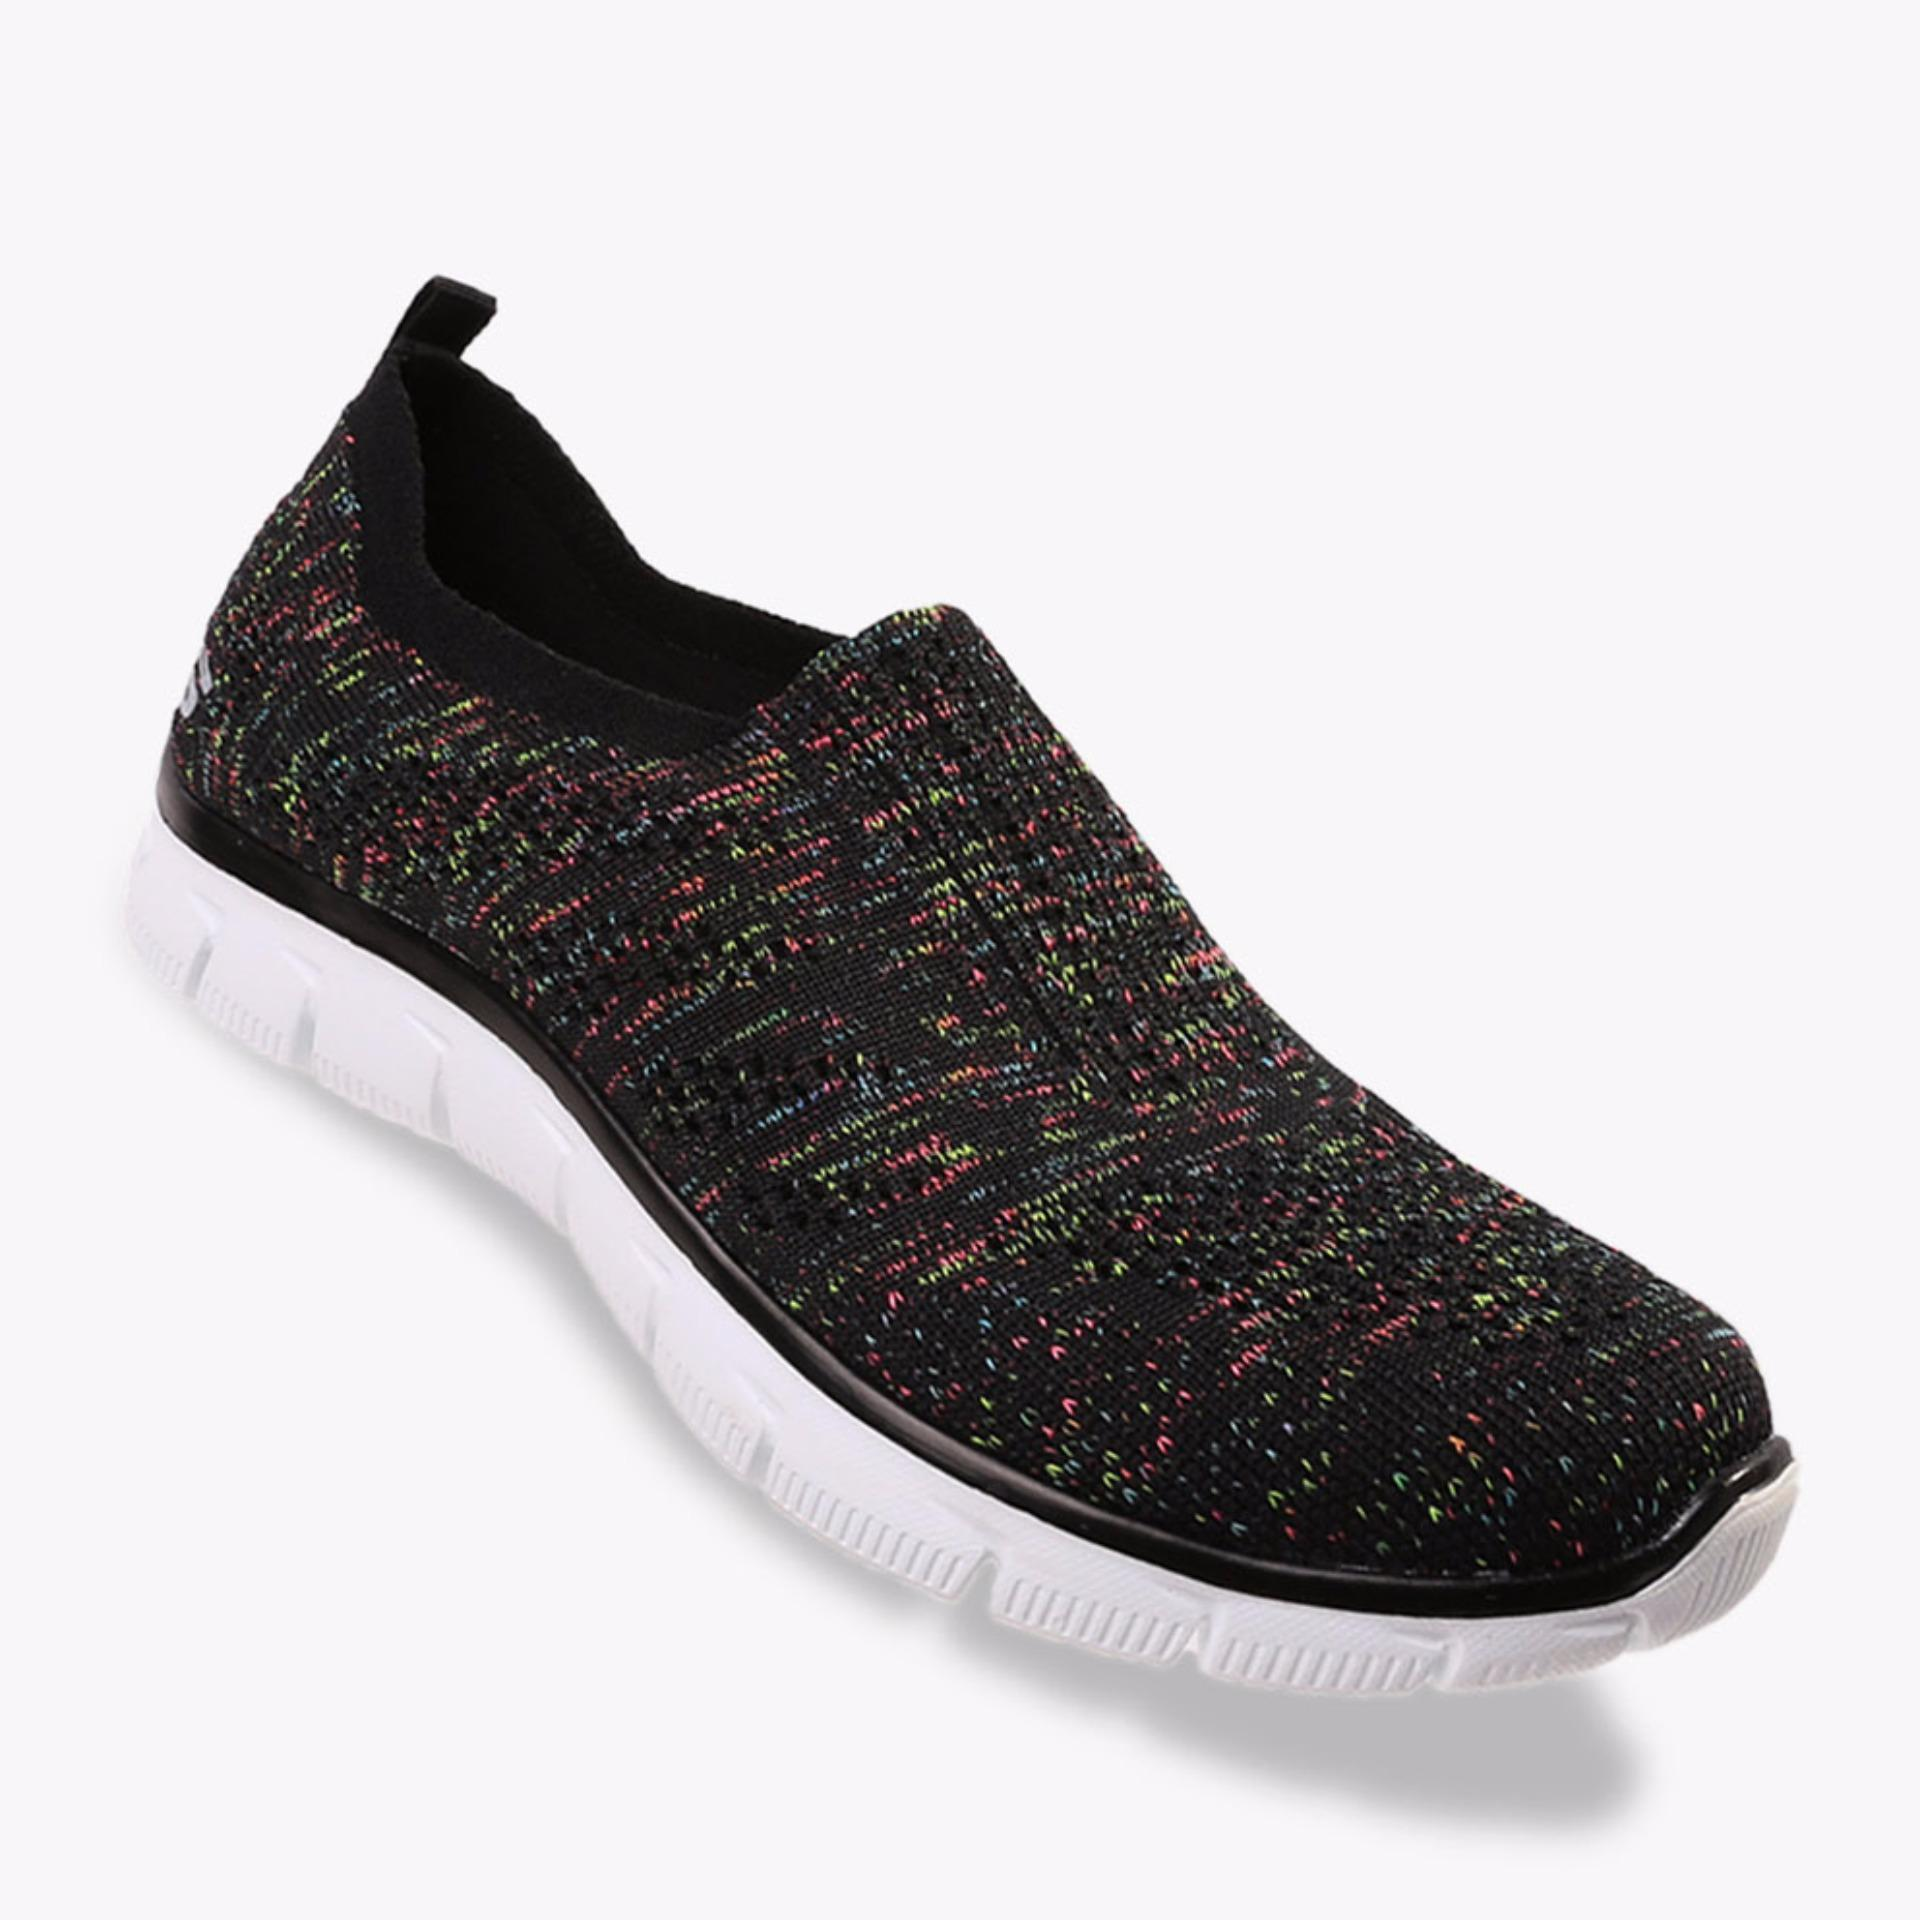 Diskon Skechers Empire Inside Look Women S Sneakers Shoes Hitam Branded